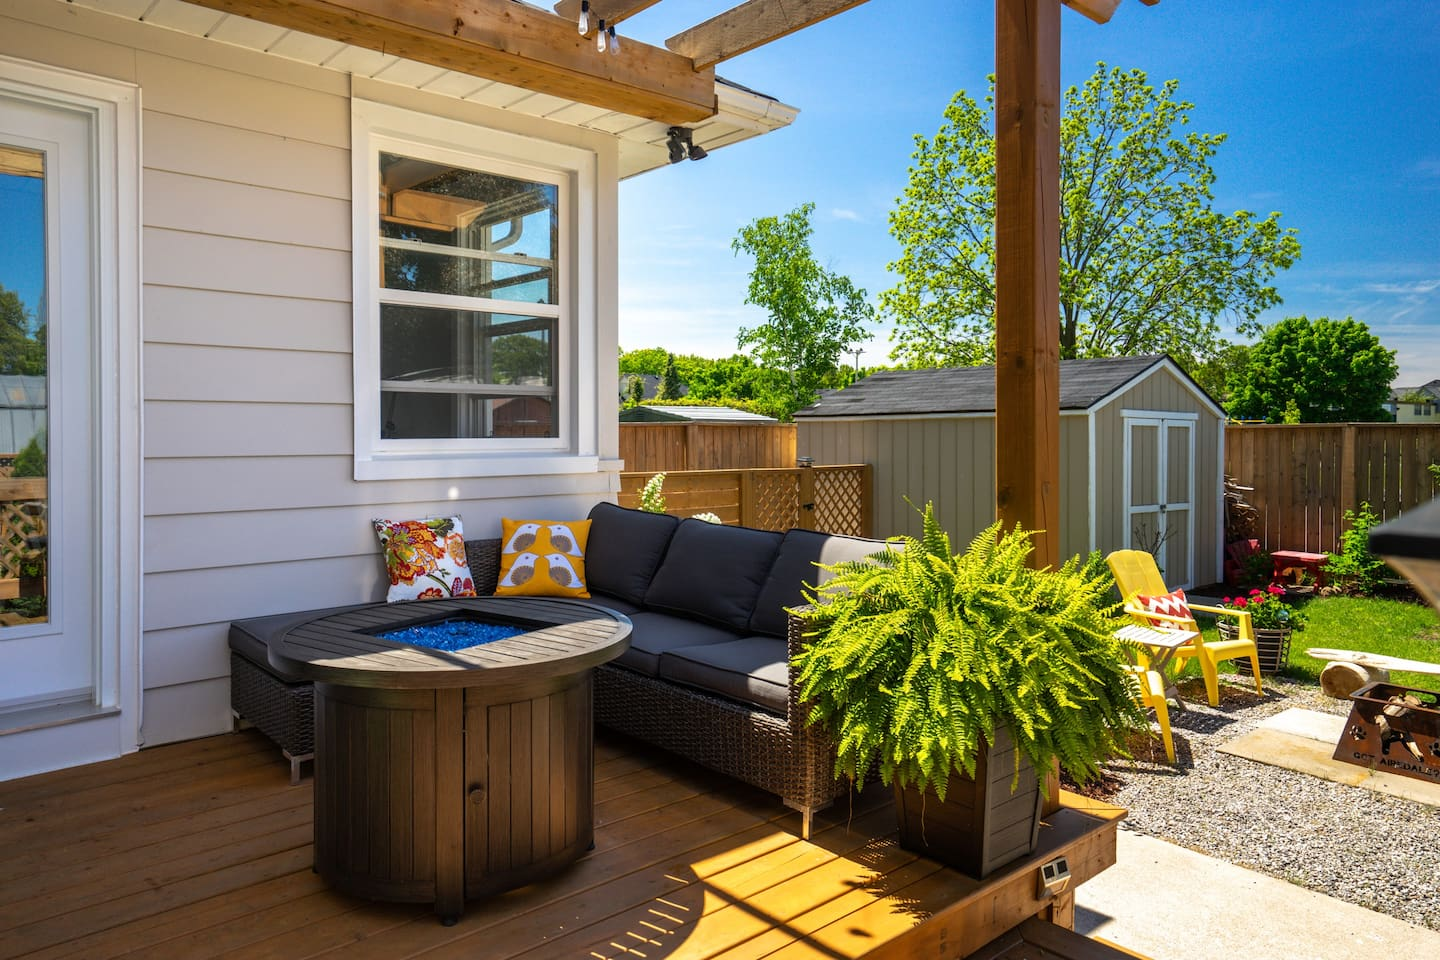 Private deck with propaine fireplace to relax under the stars or enjoy the sun during the day.